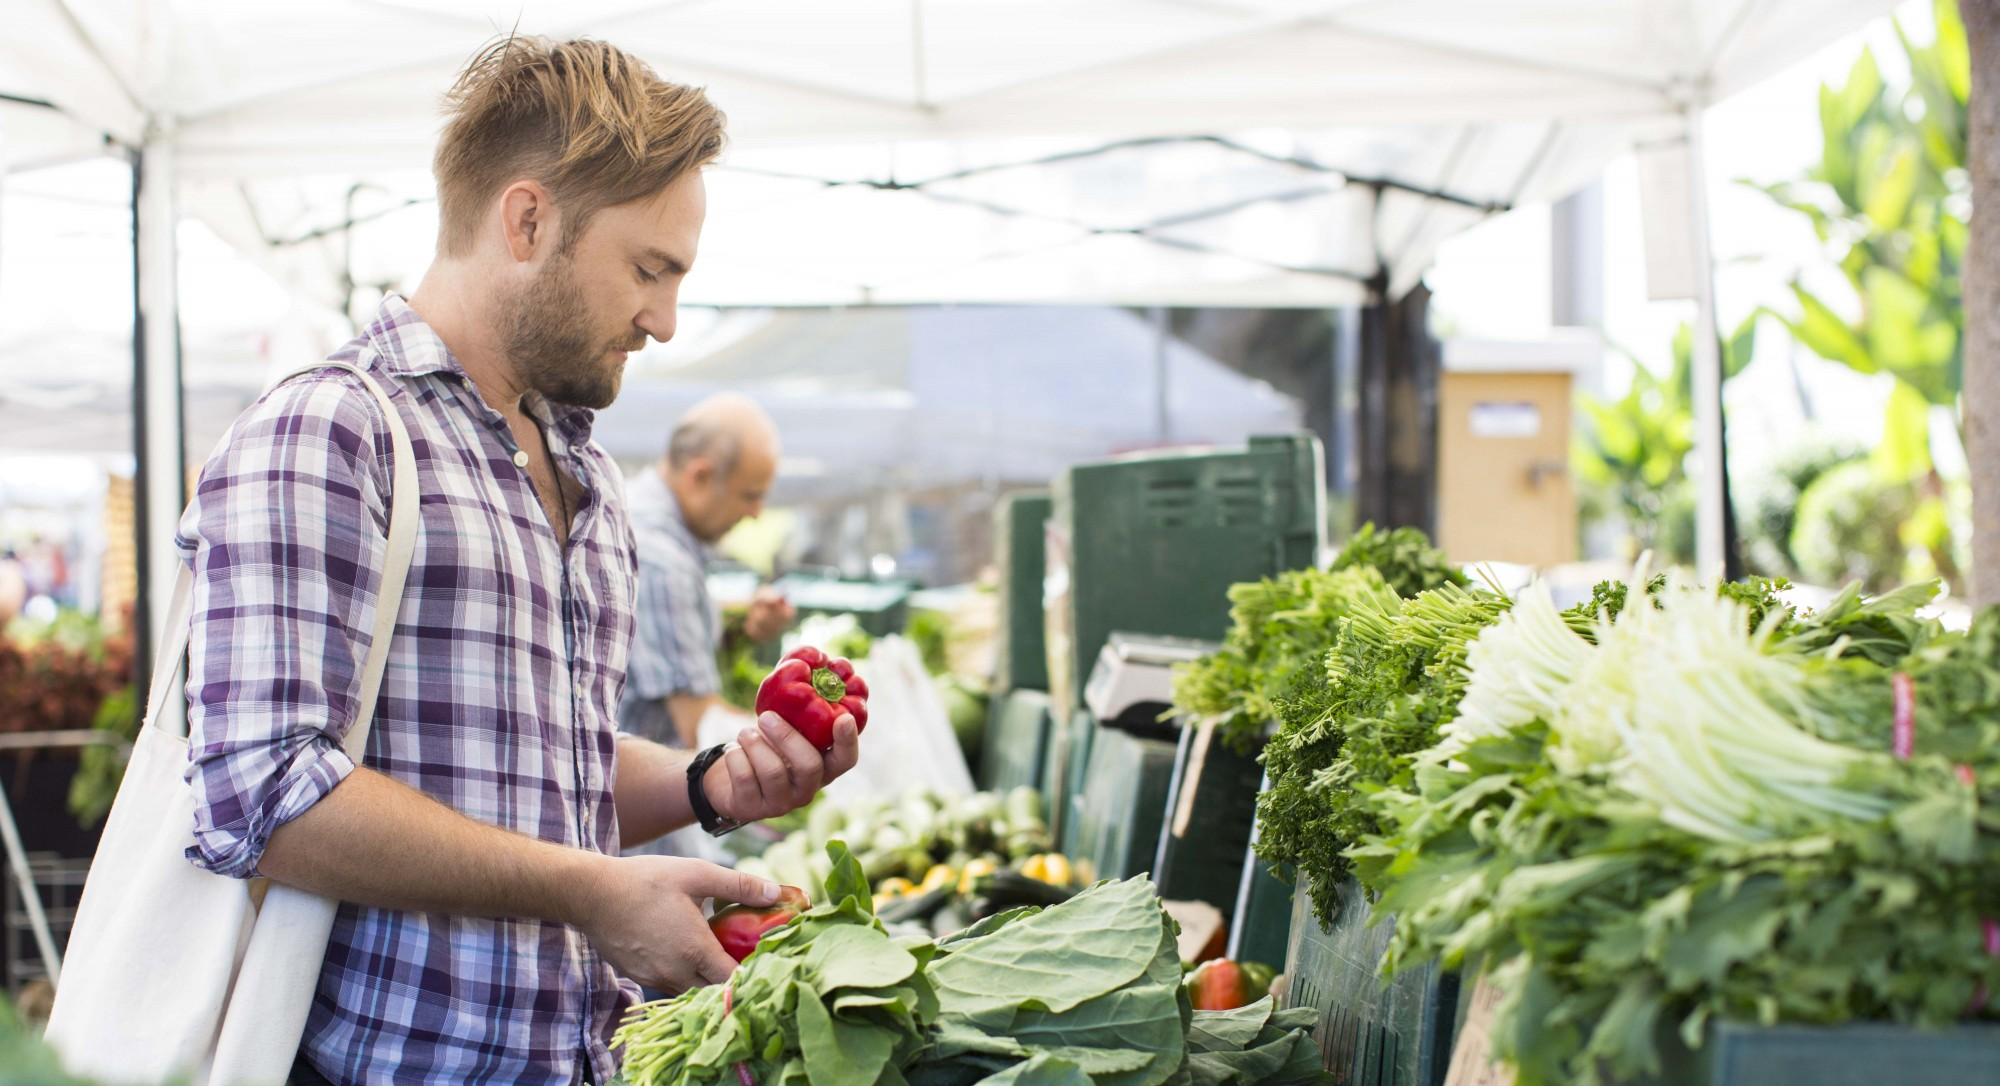 5 Reasons Why Shopping at a Farmers Market Helps Save the World